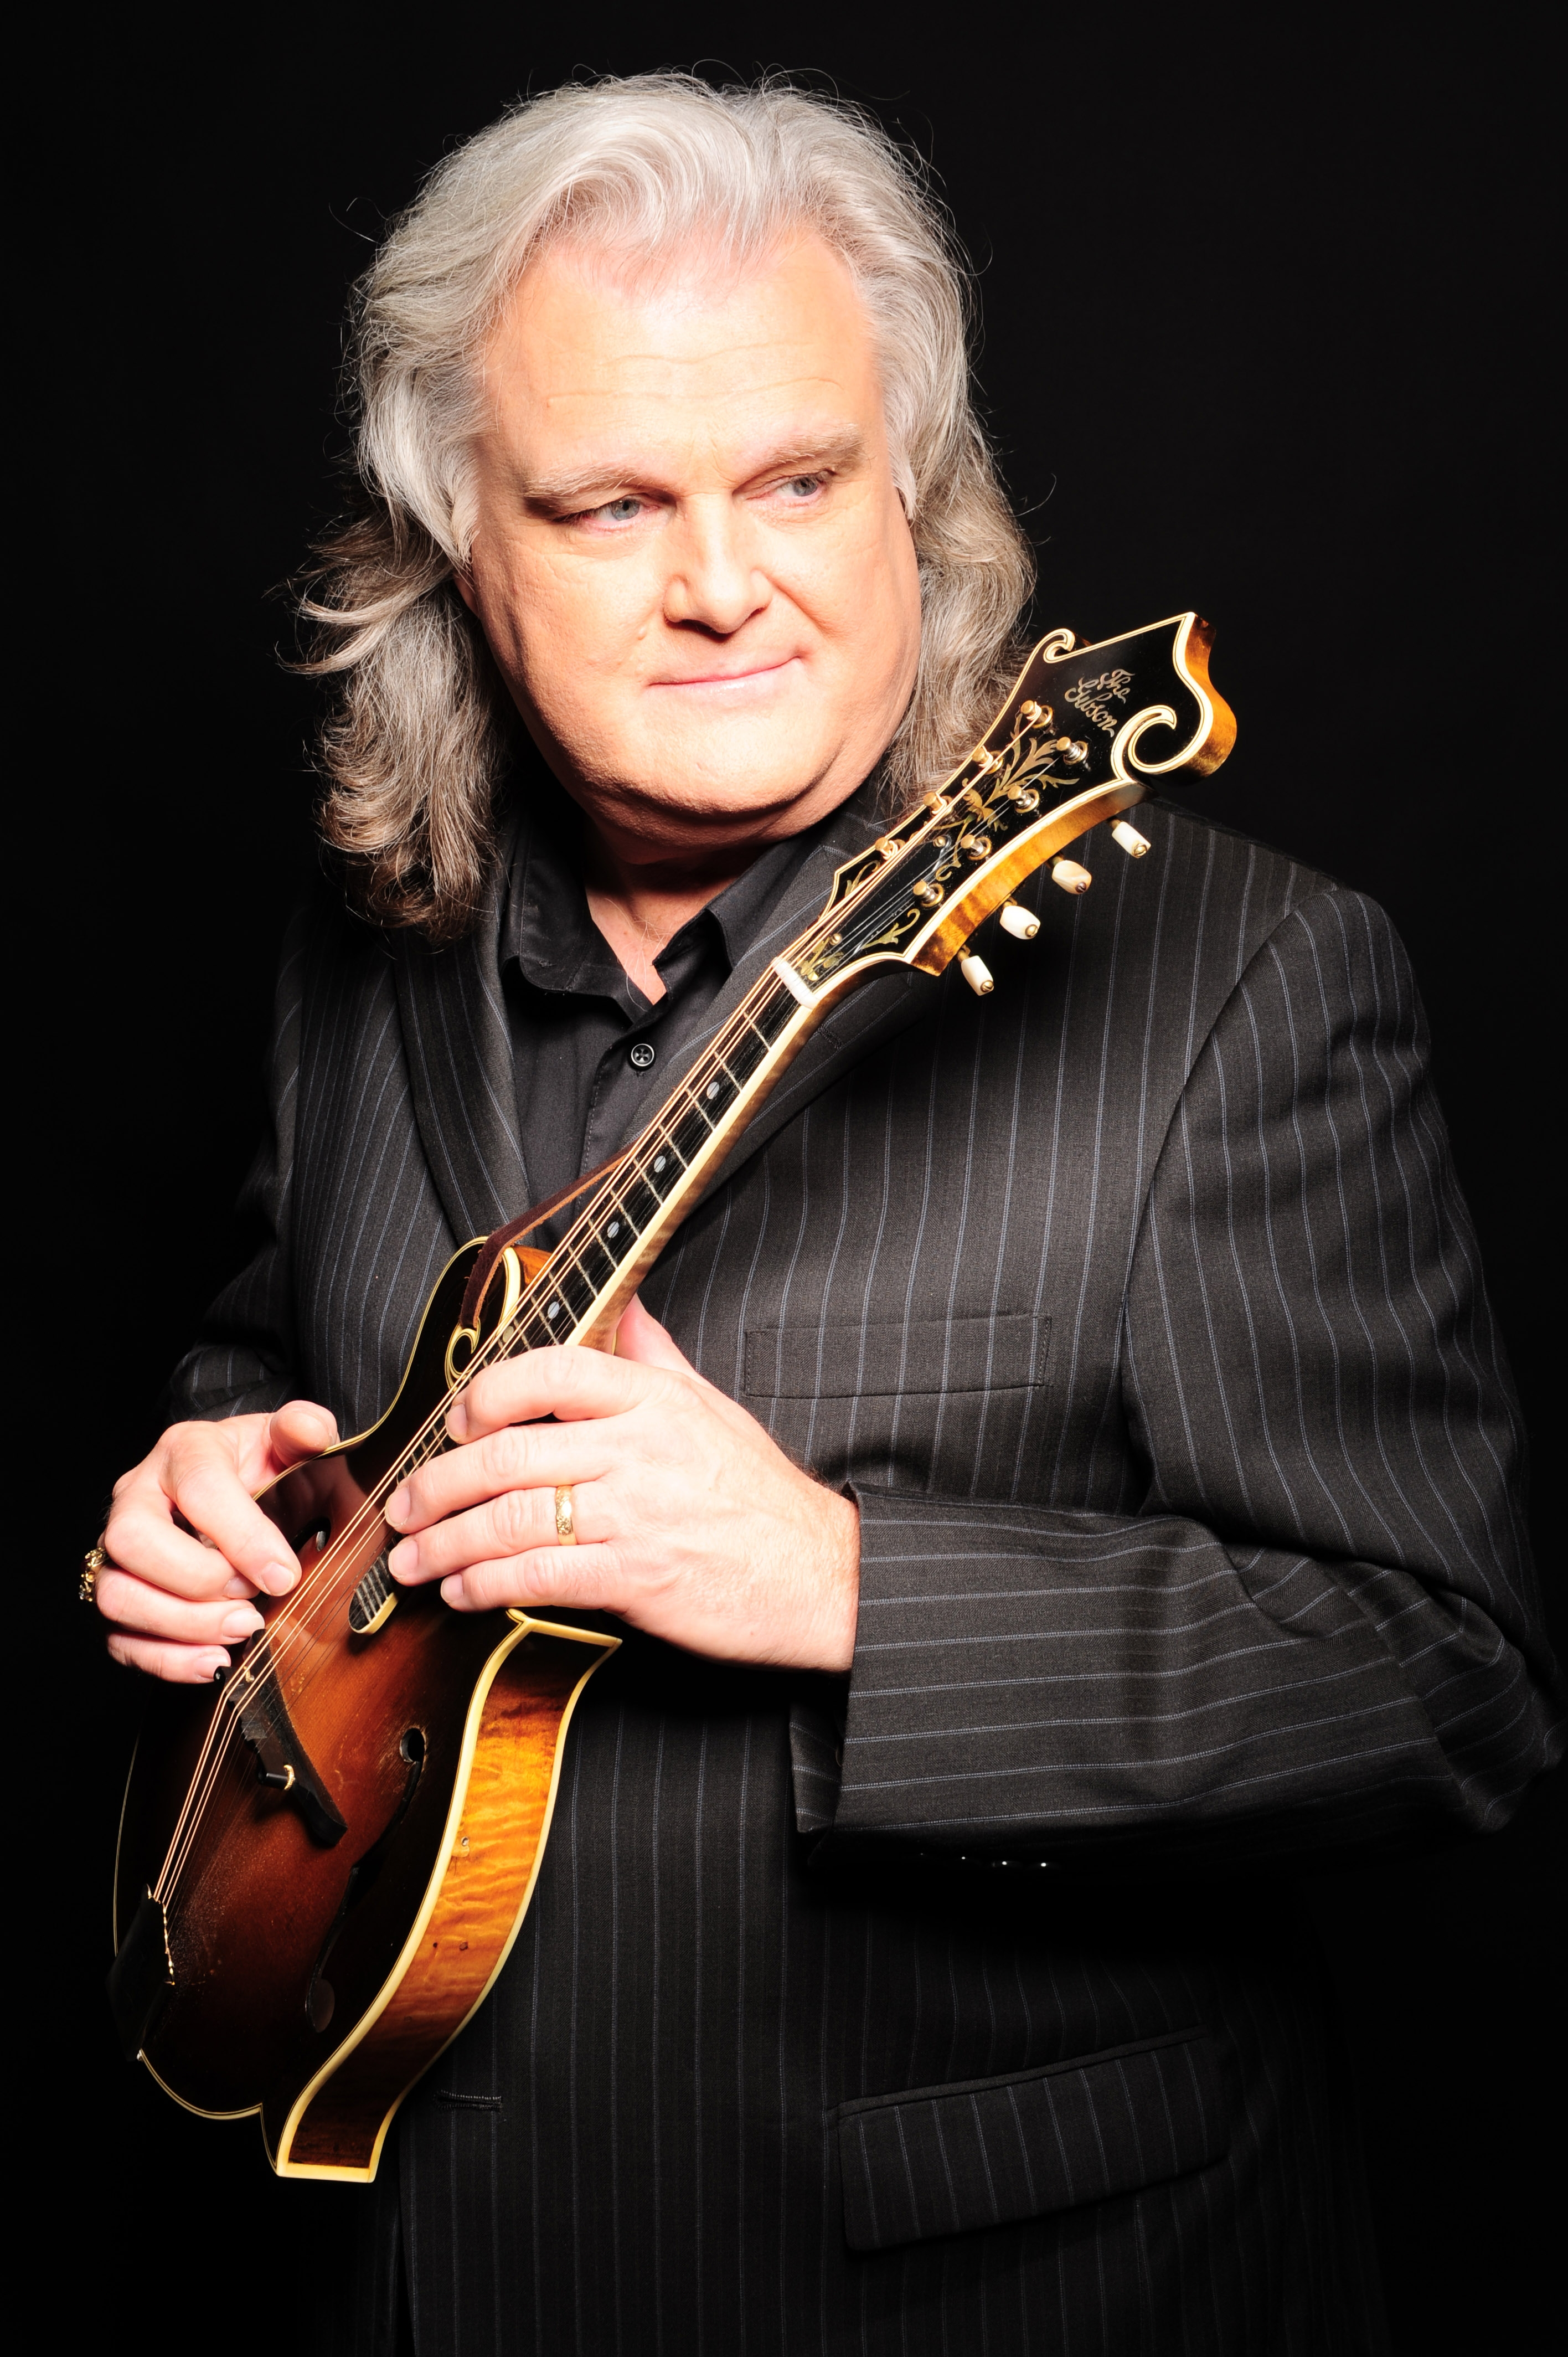 Grammy Award-Winning Artist Ricky Skaggs Headlines 13th Annual Bloomin' BBQ & Bluegrass